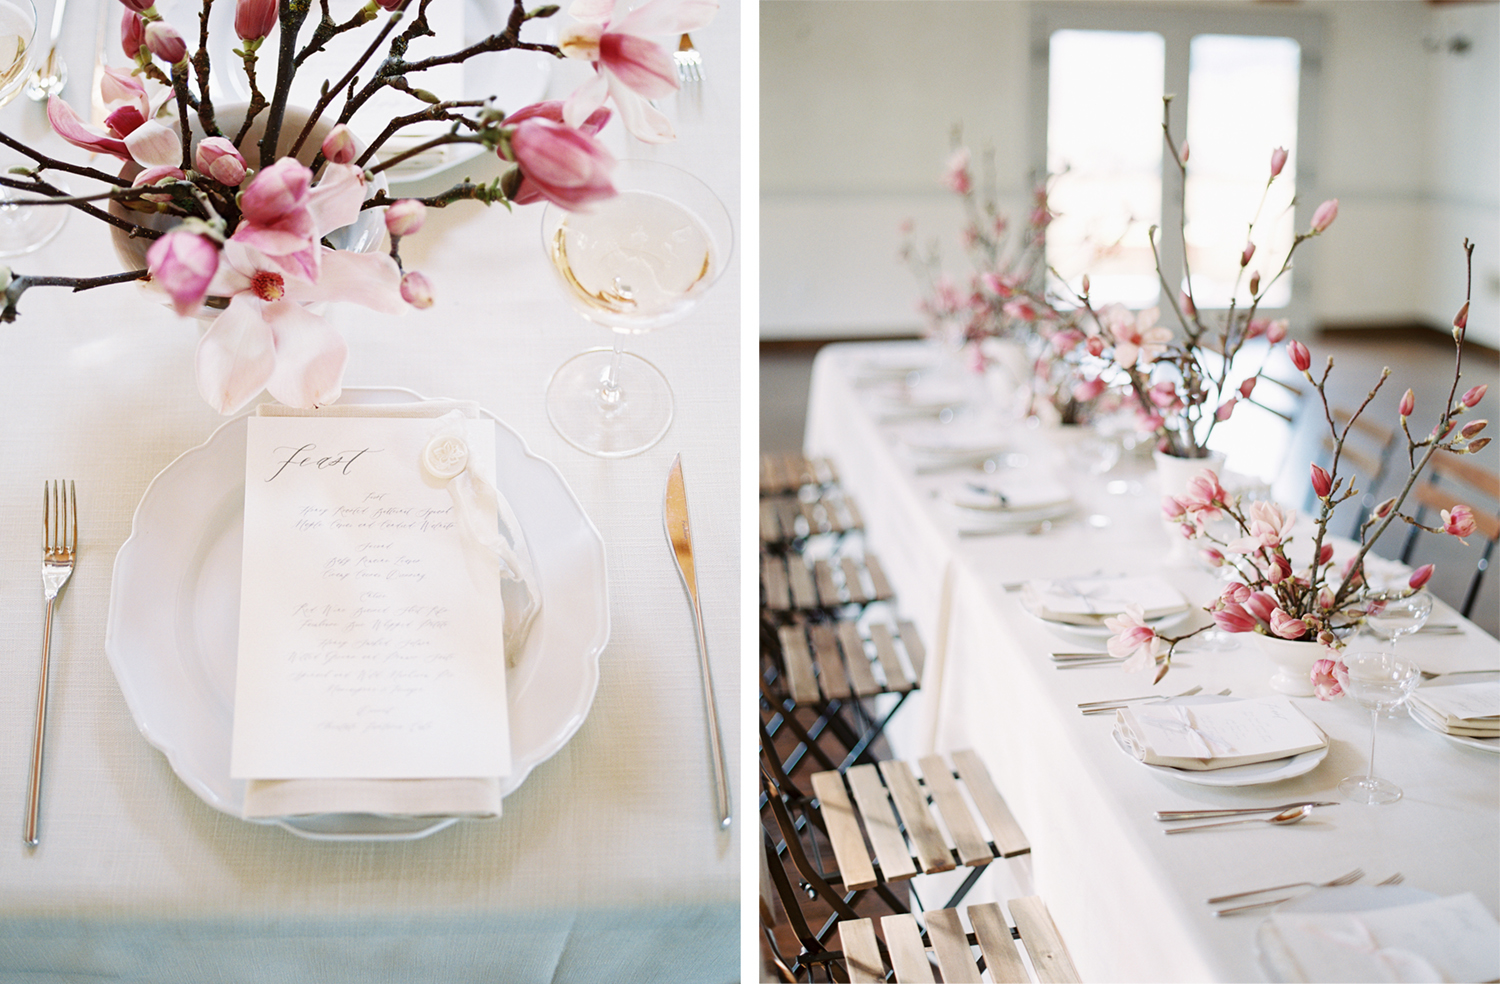 white table cloth with minimal design pink flowers with woody stems